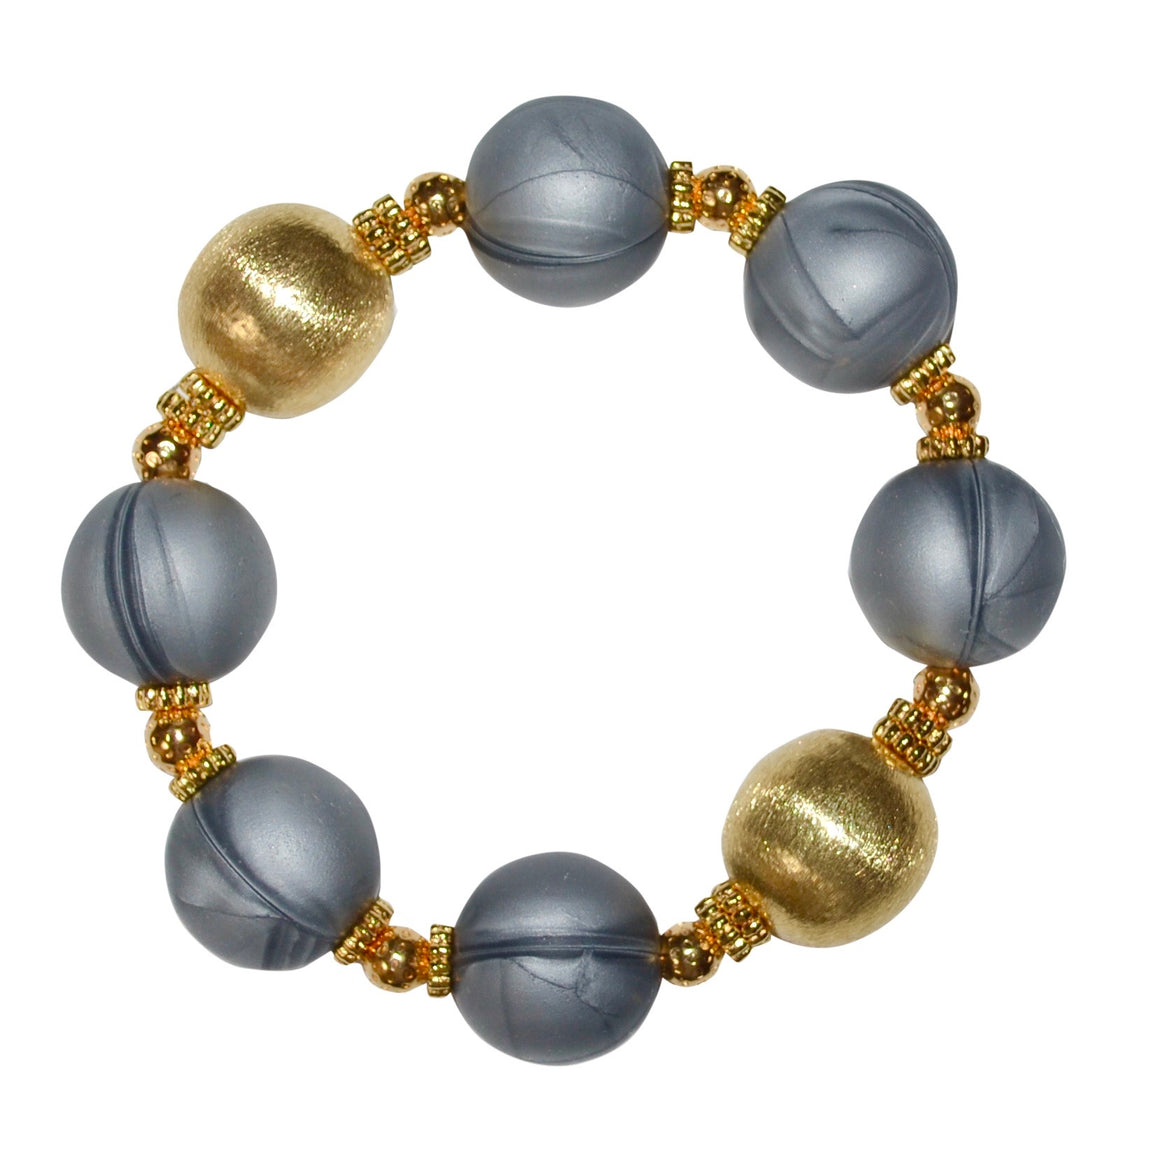 TESSA STATEMENT BRACELET IN GRAY AND GOLD